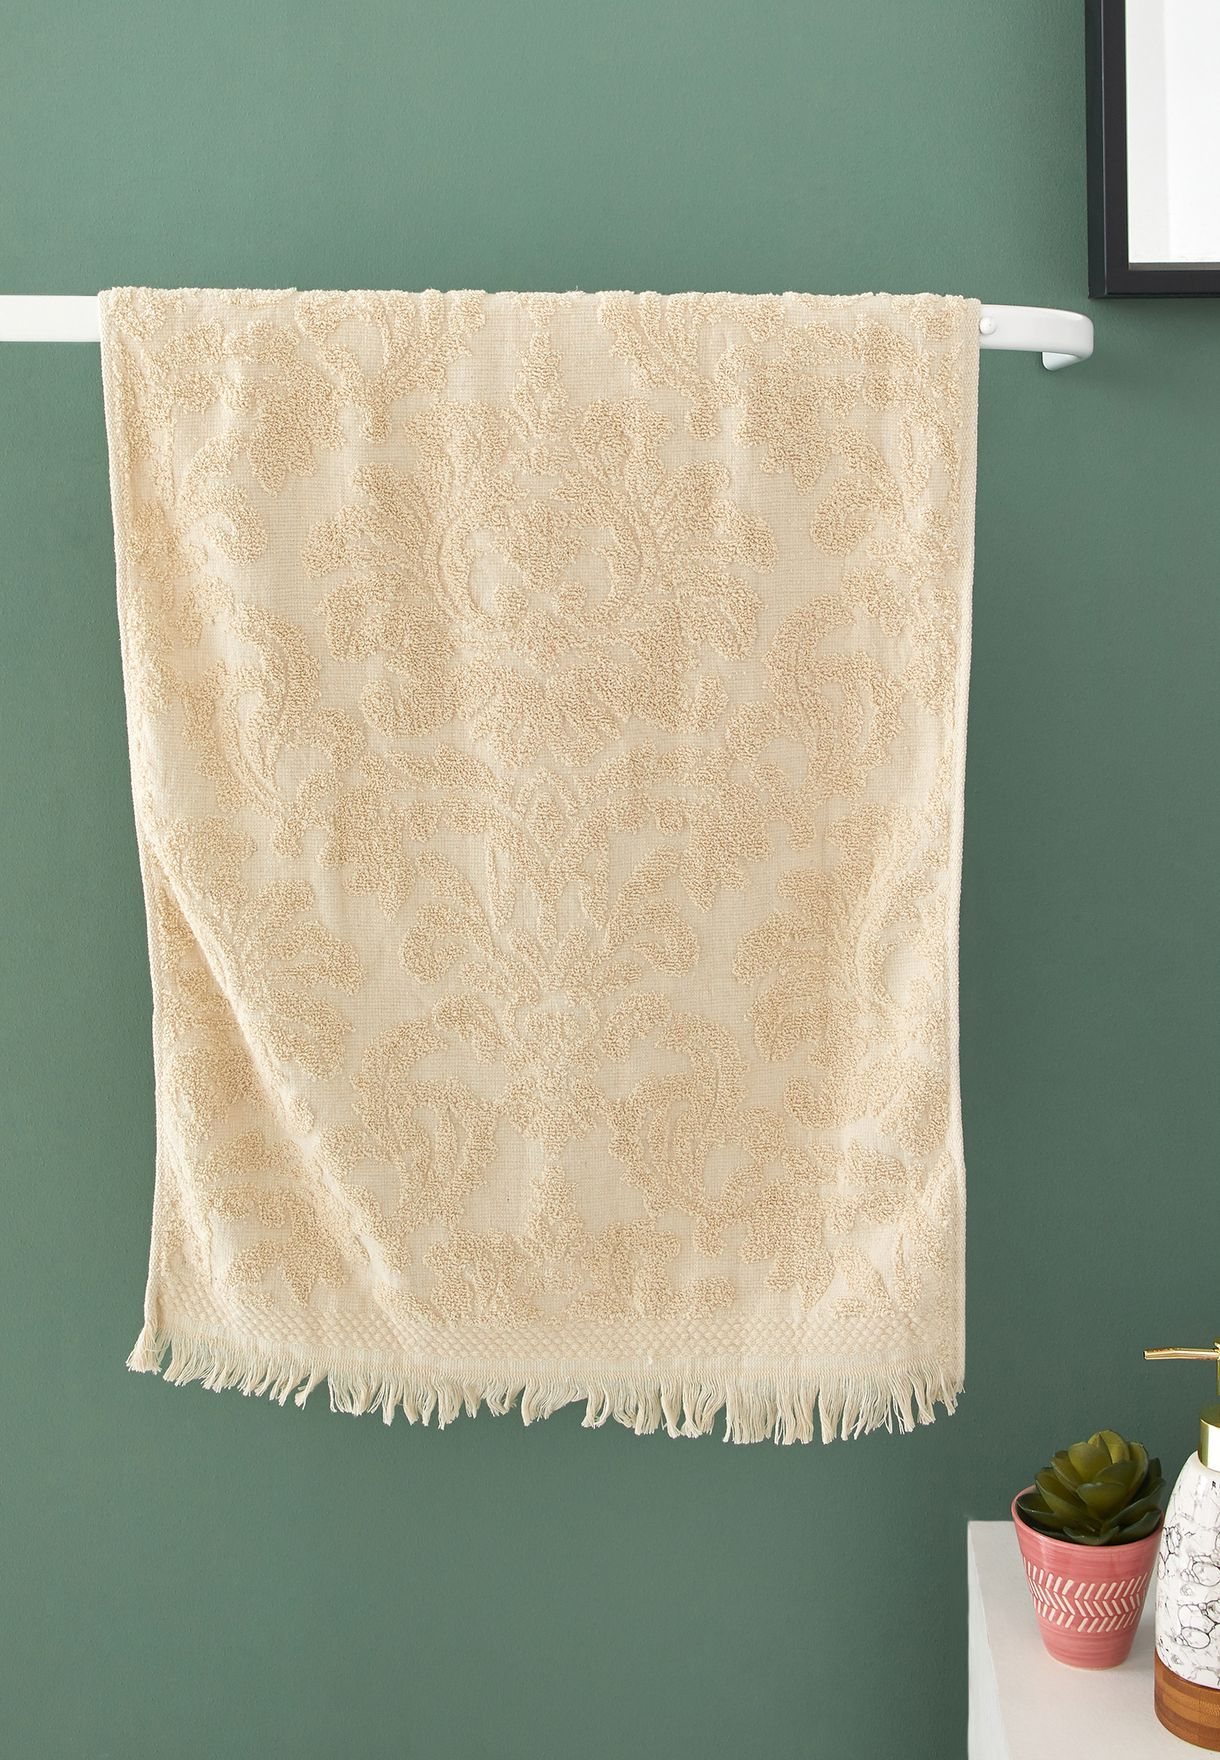 Cream Patterned Hand Towel